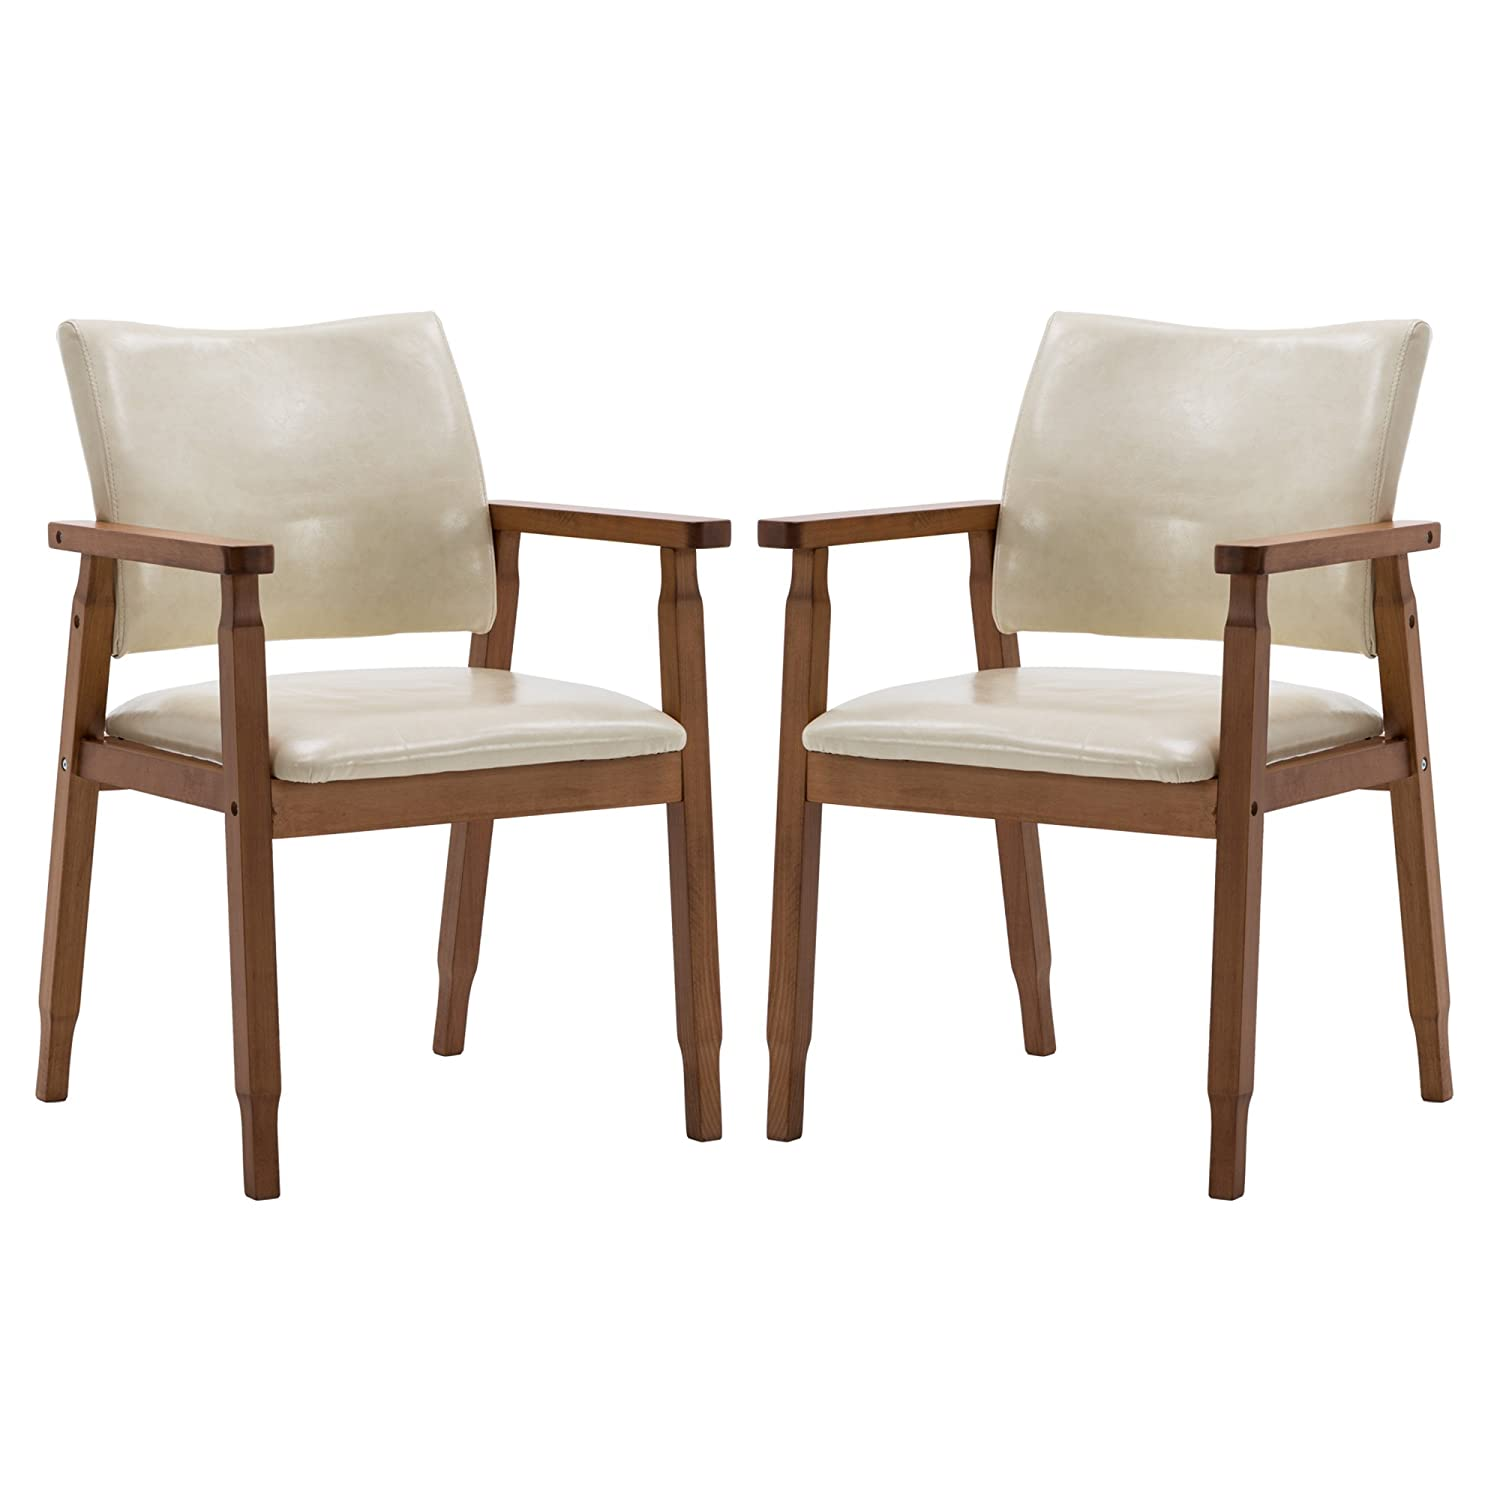 NOBPEINT Mid-Century Dining Side Chair with Faux Leather Seat in Tan, Arm Chair in Walnut,Set of 2